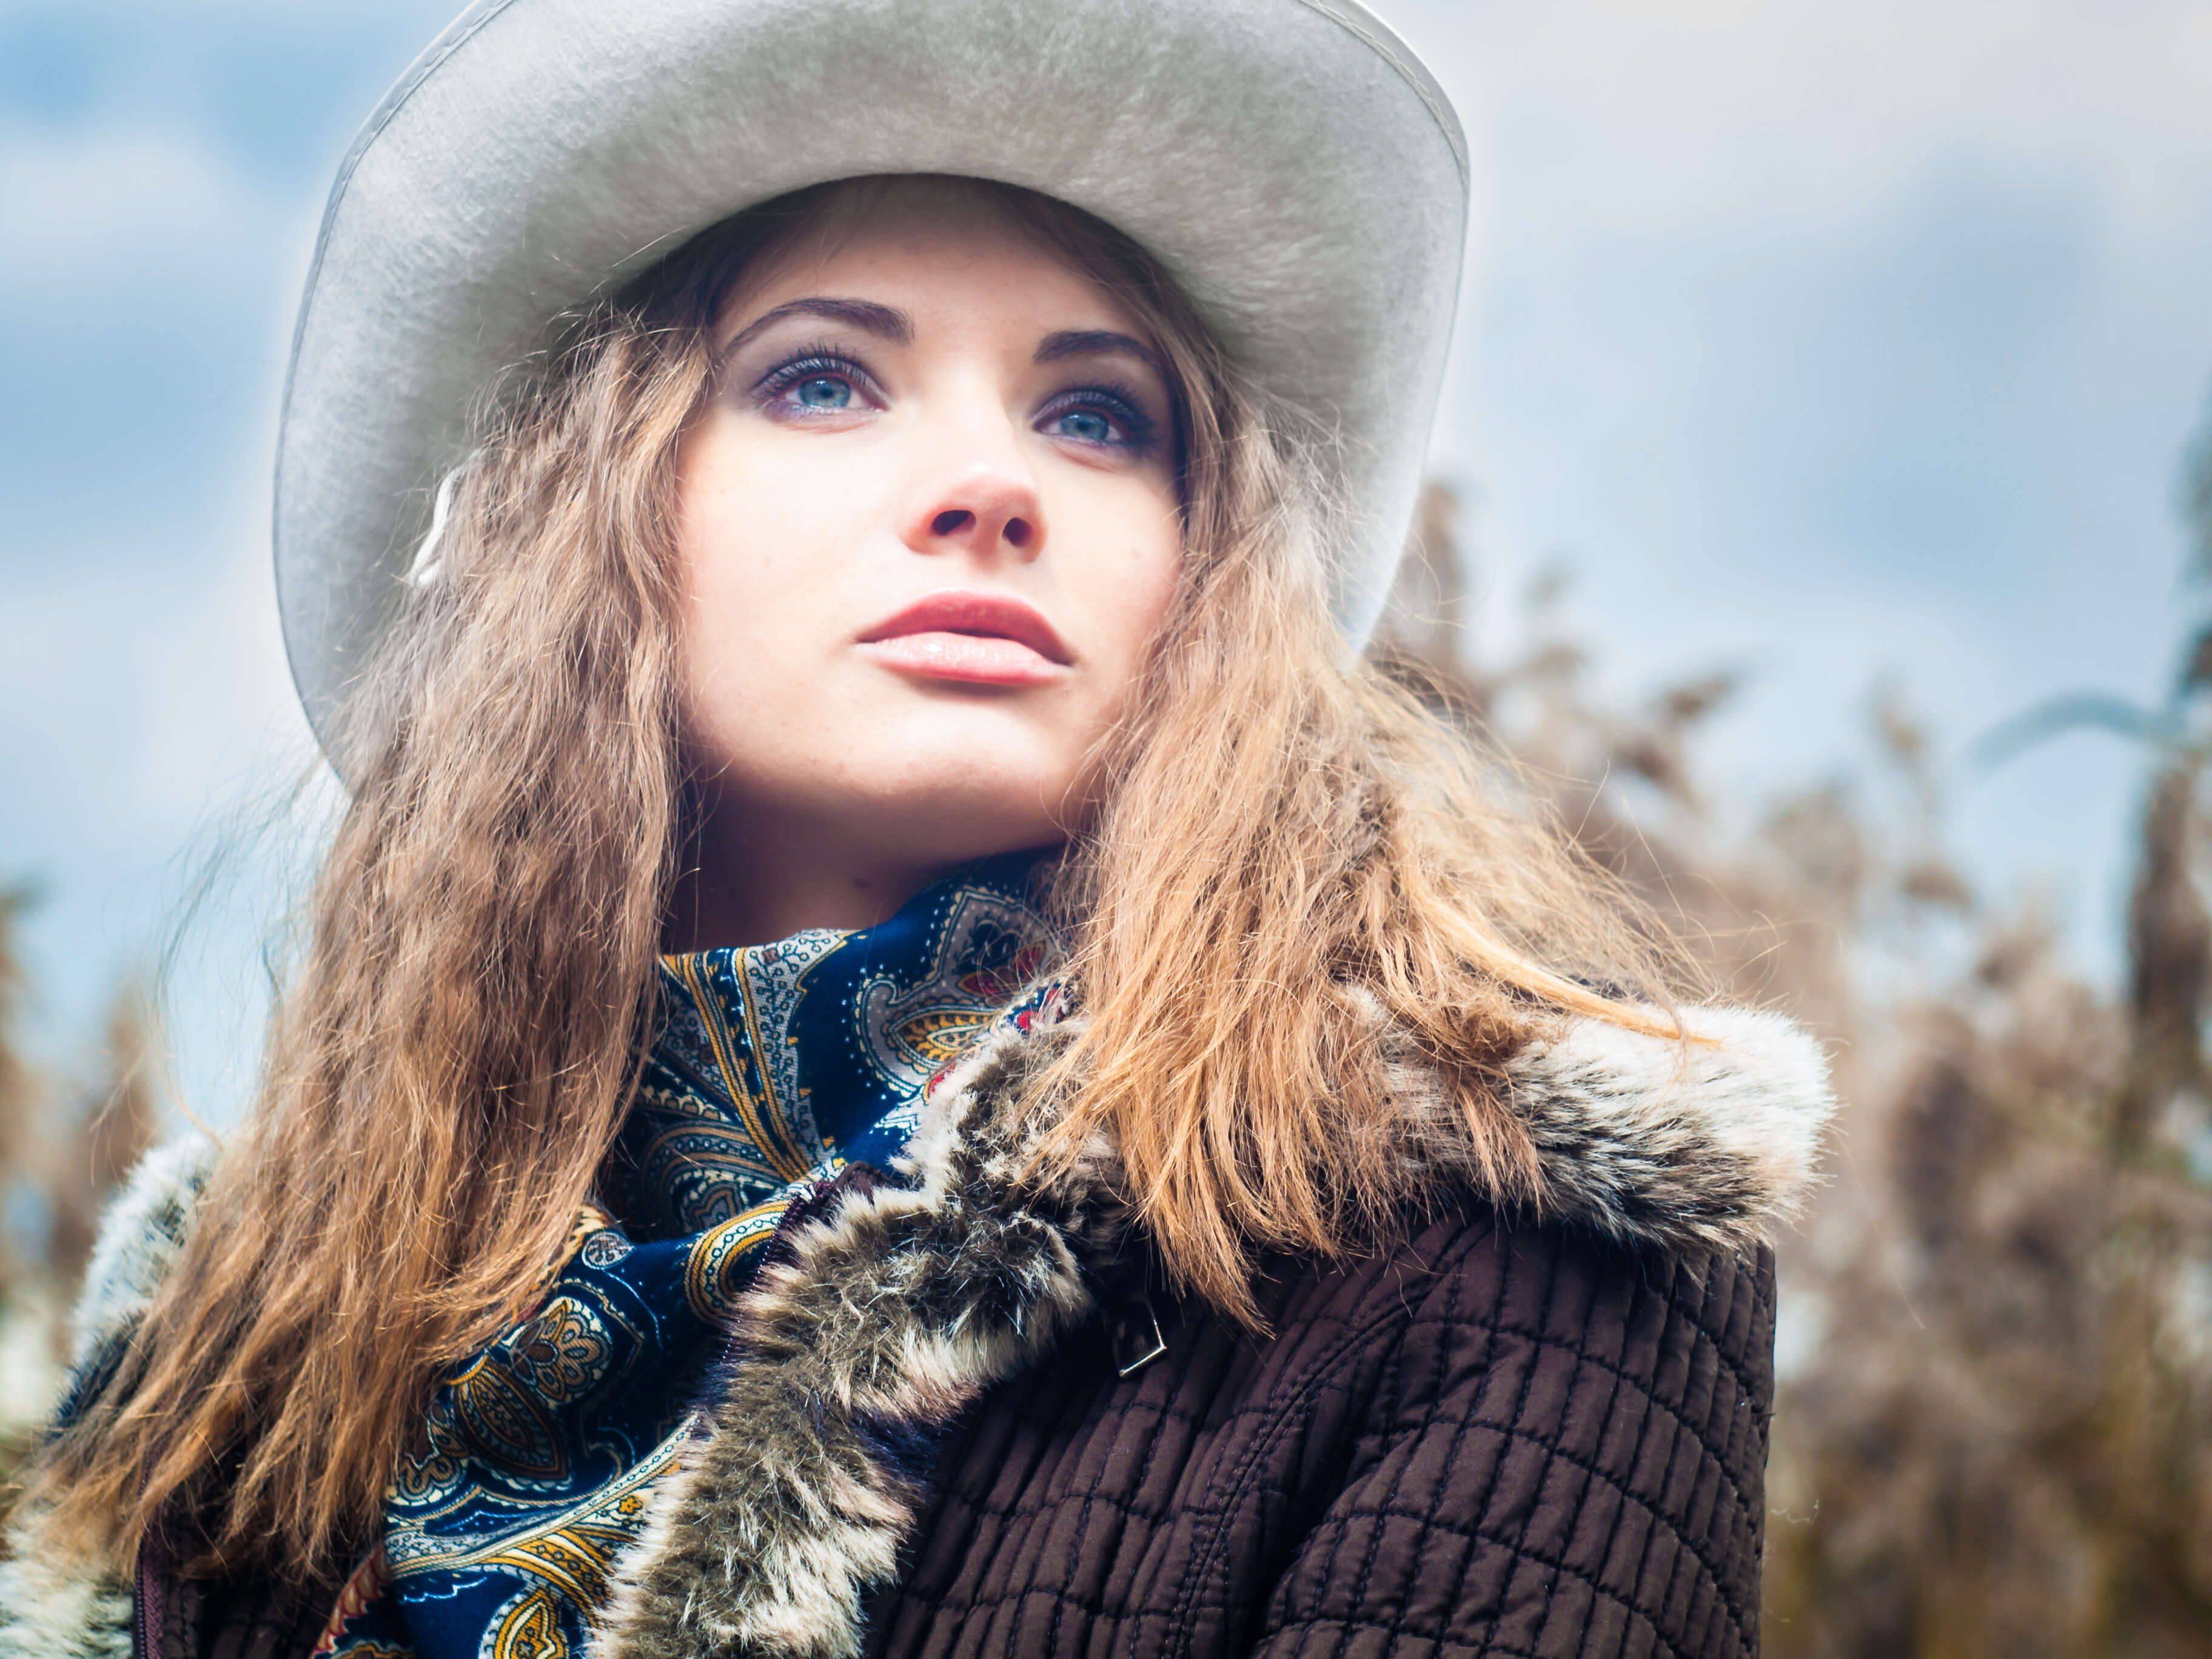 Commercial beauty photography of model headshot in hat in winter for ecommerce and online shops this pro photo made by Fantastic Imago Branding, Advertising and Consulting Agency